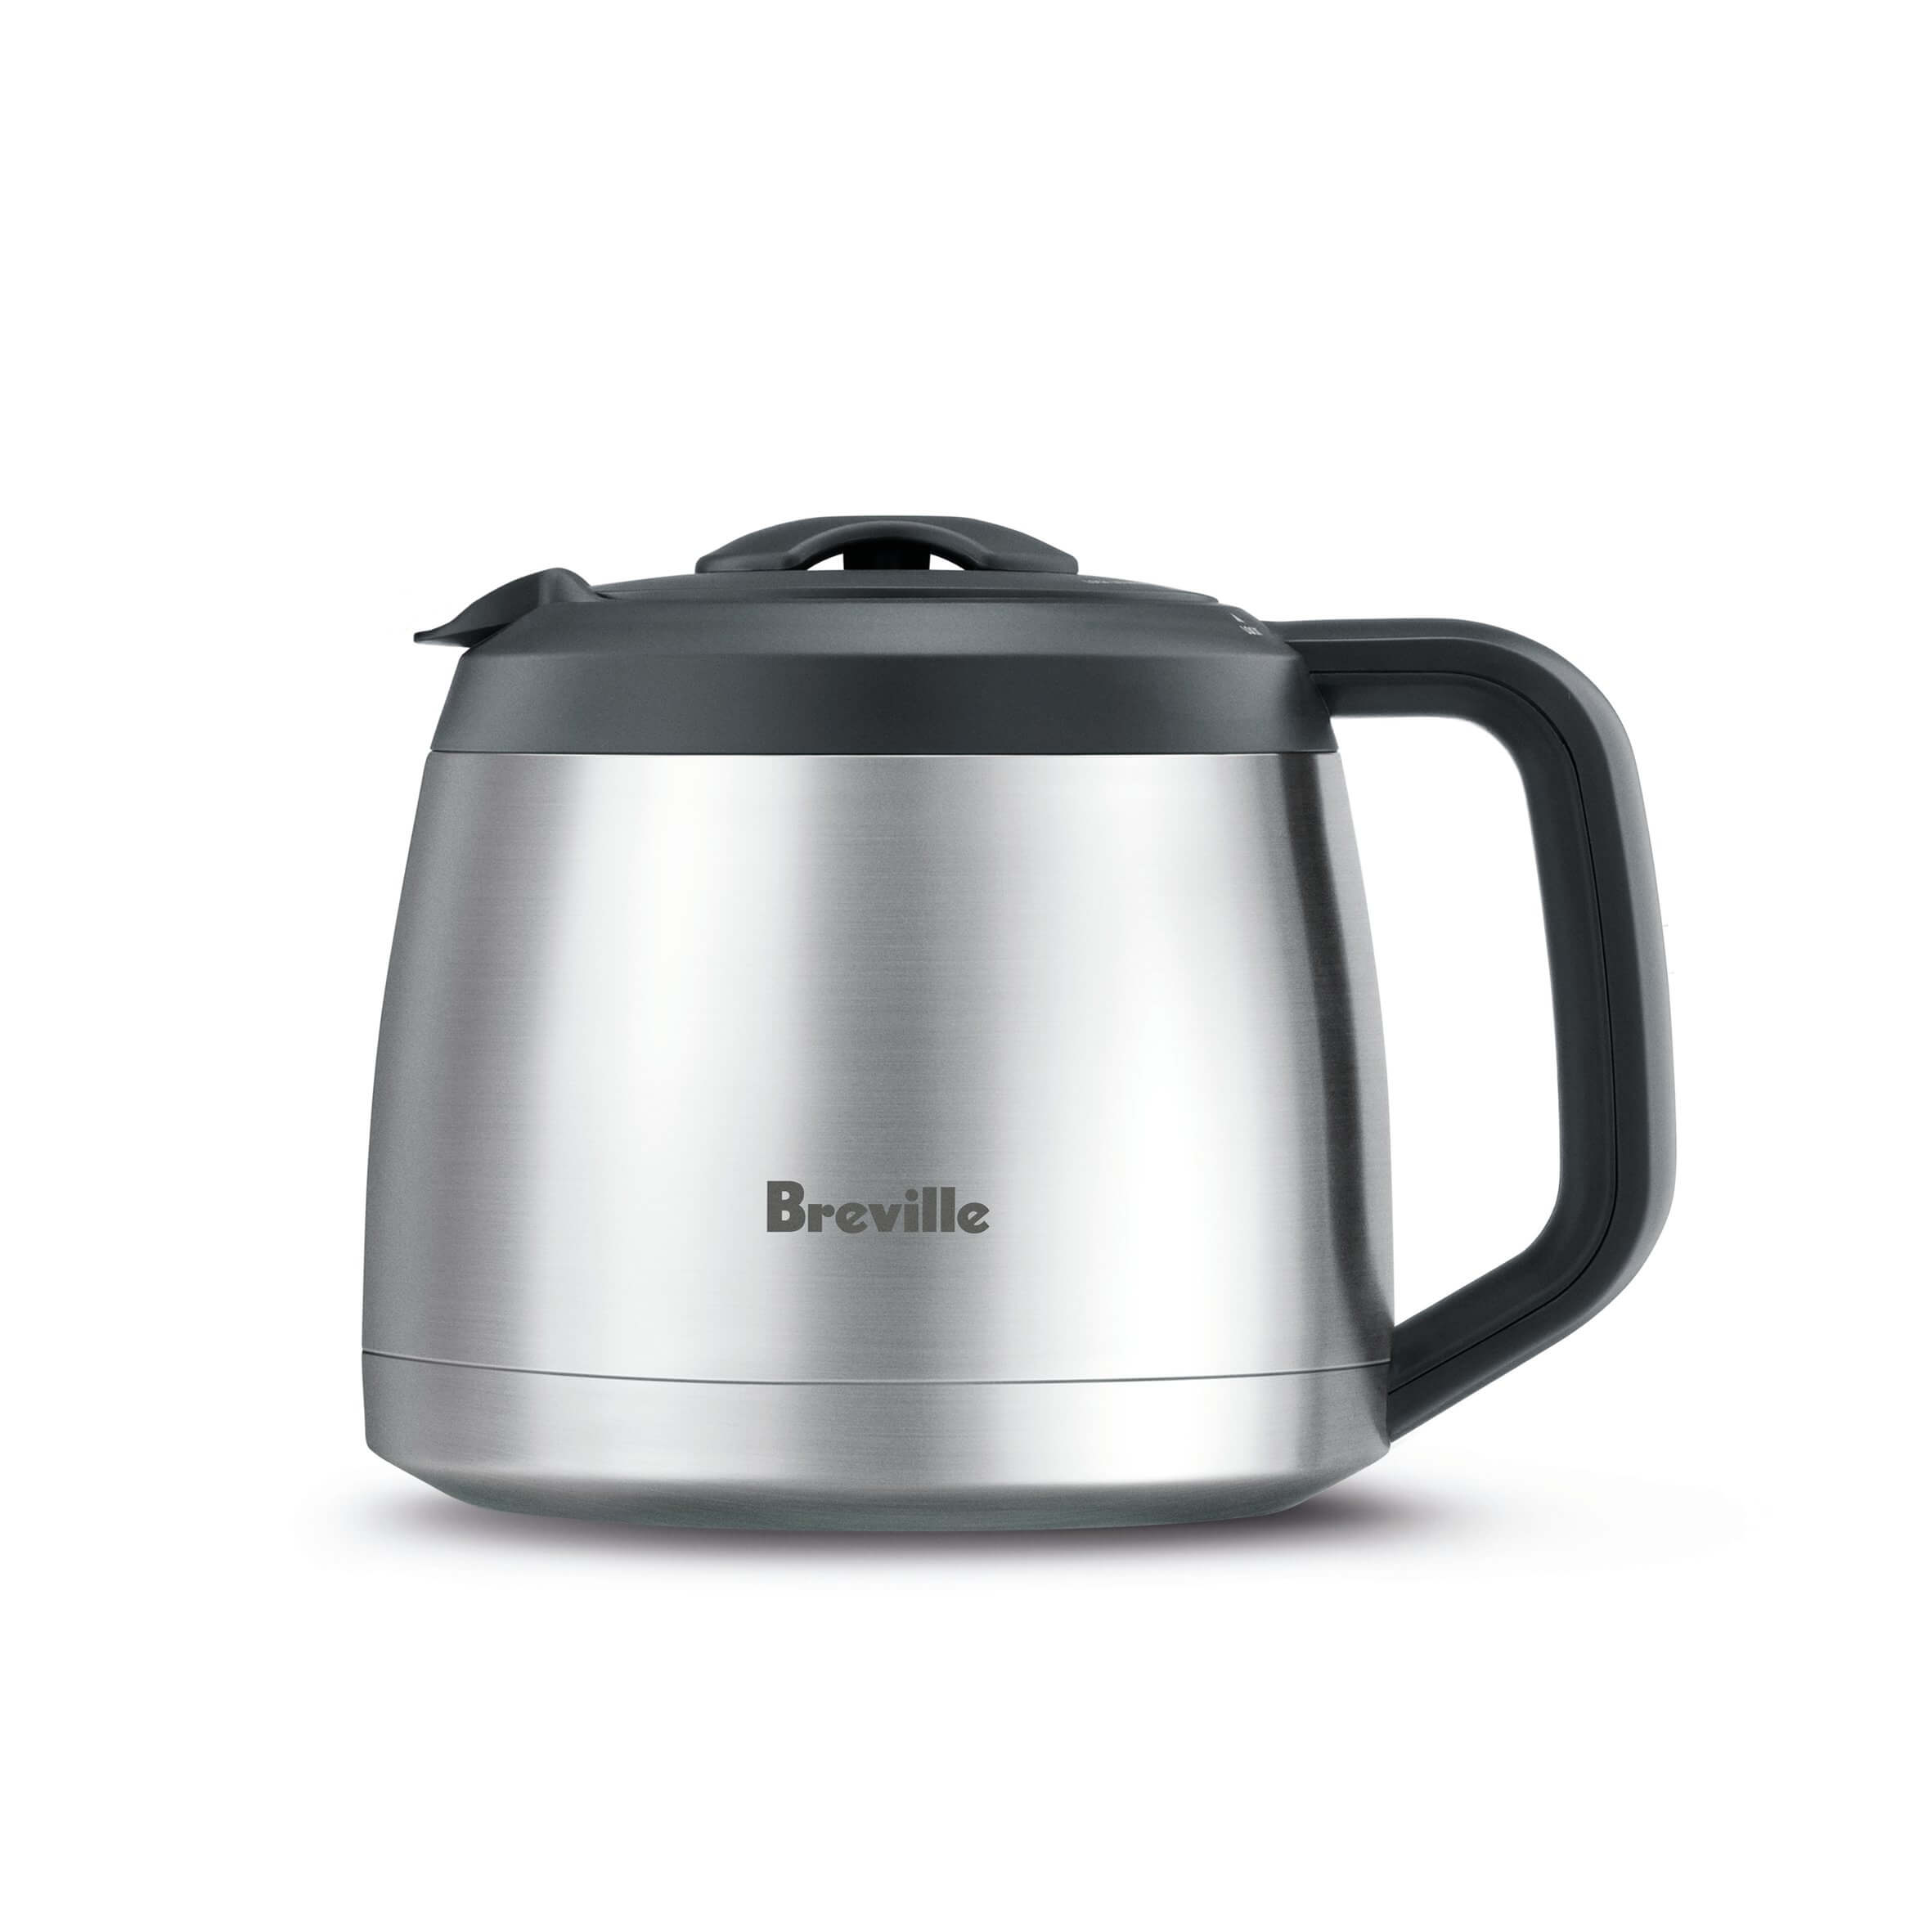 Breville BDC650BSS Brushed Coffee maker with Grinder, coffee maker with grinder, coffee maker reviews, grind and brew coffee maker